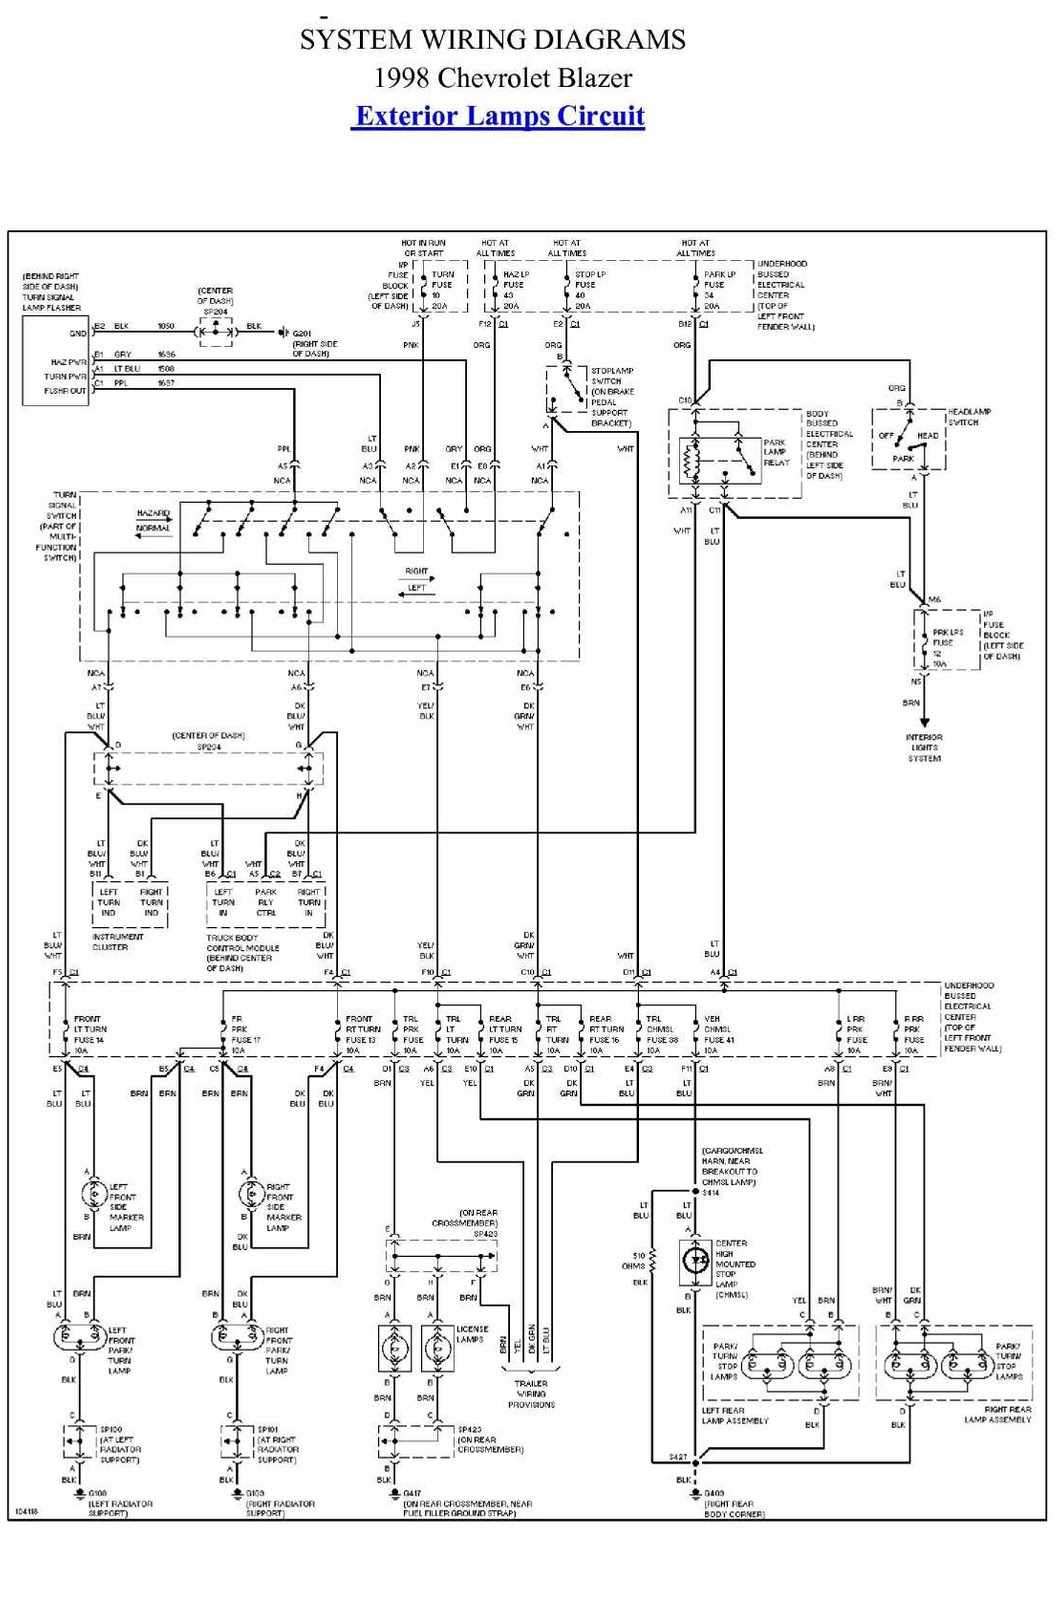 1998 chevy blazer electrical wiring diagram